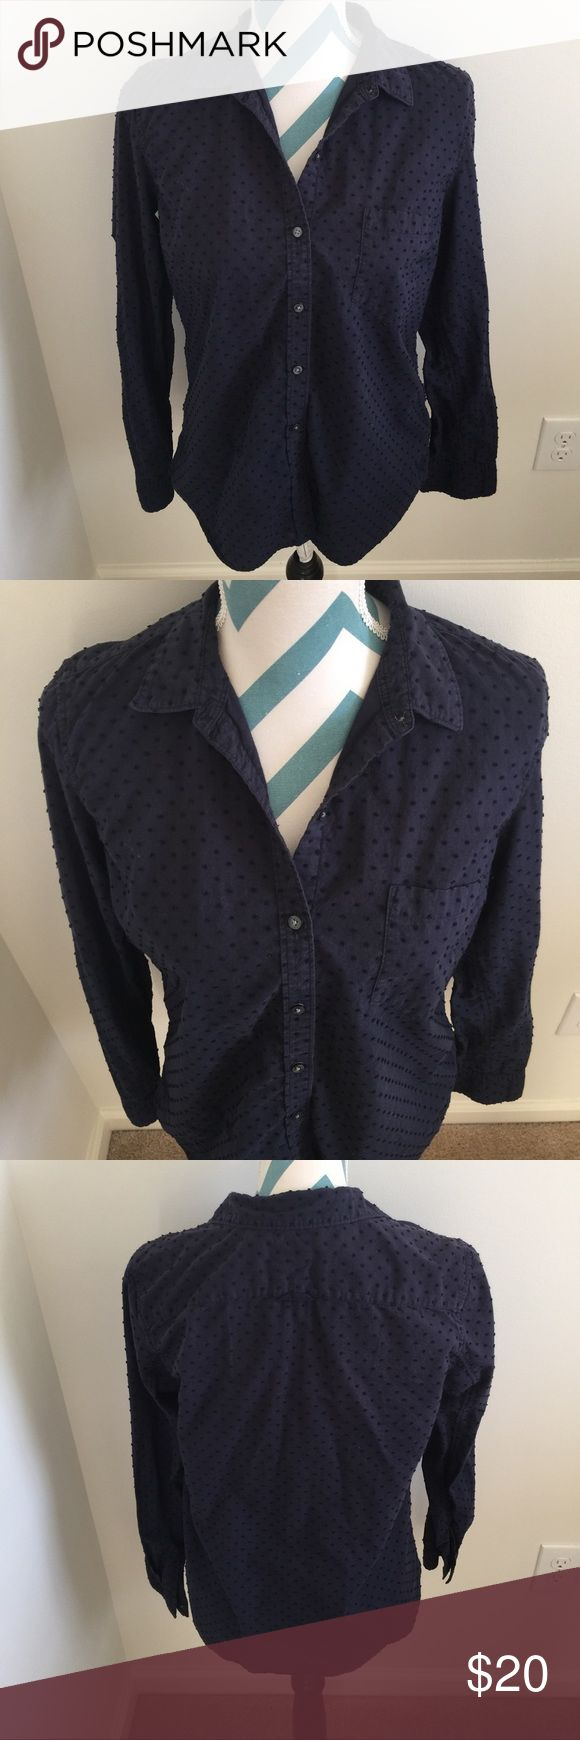 Gap Top Pretty navy blue button down with dotted stitching. Boyfriend longer looser fit. No flaws! GAP Tops